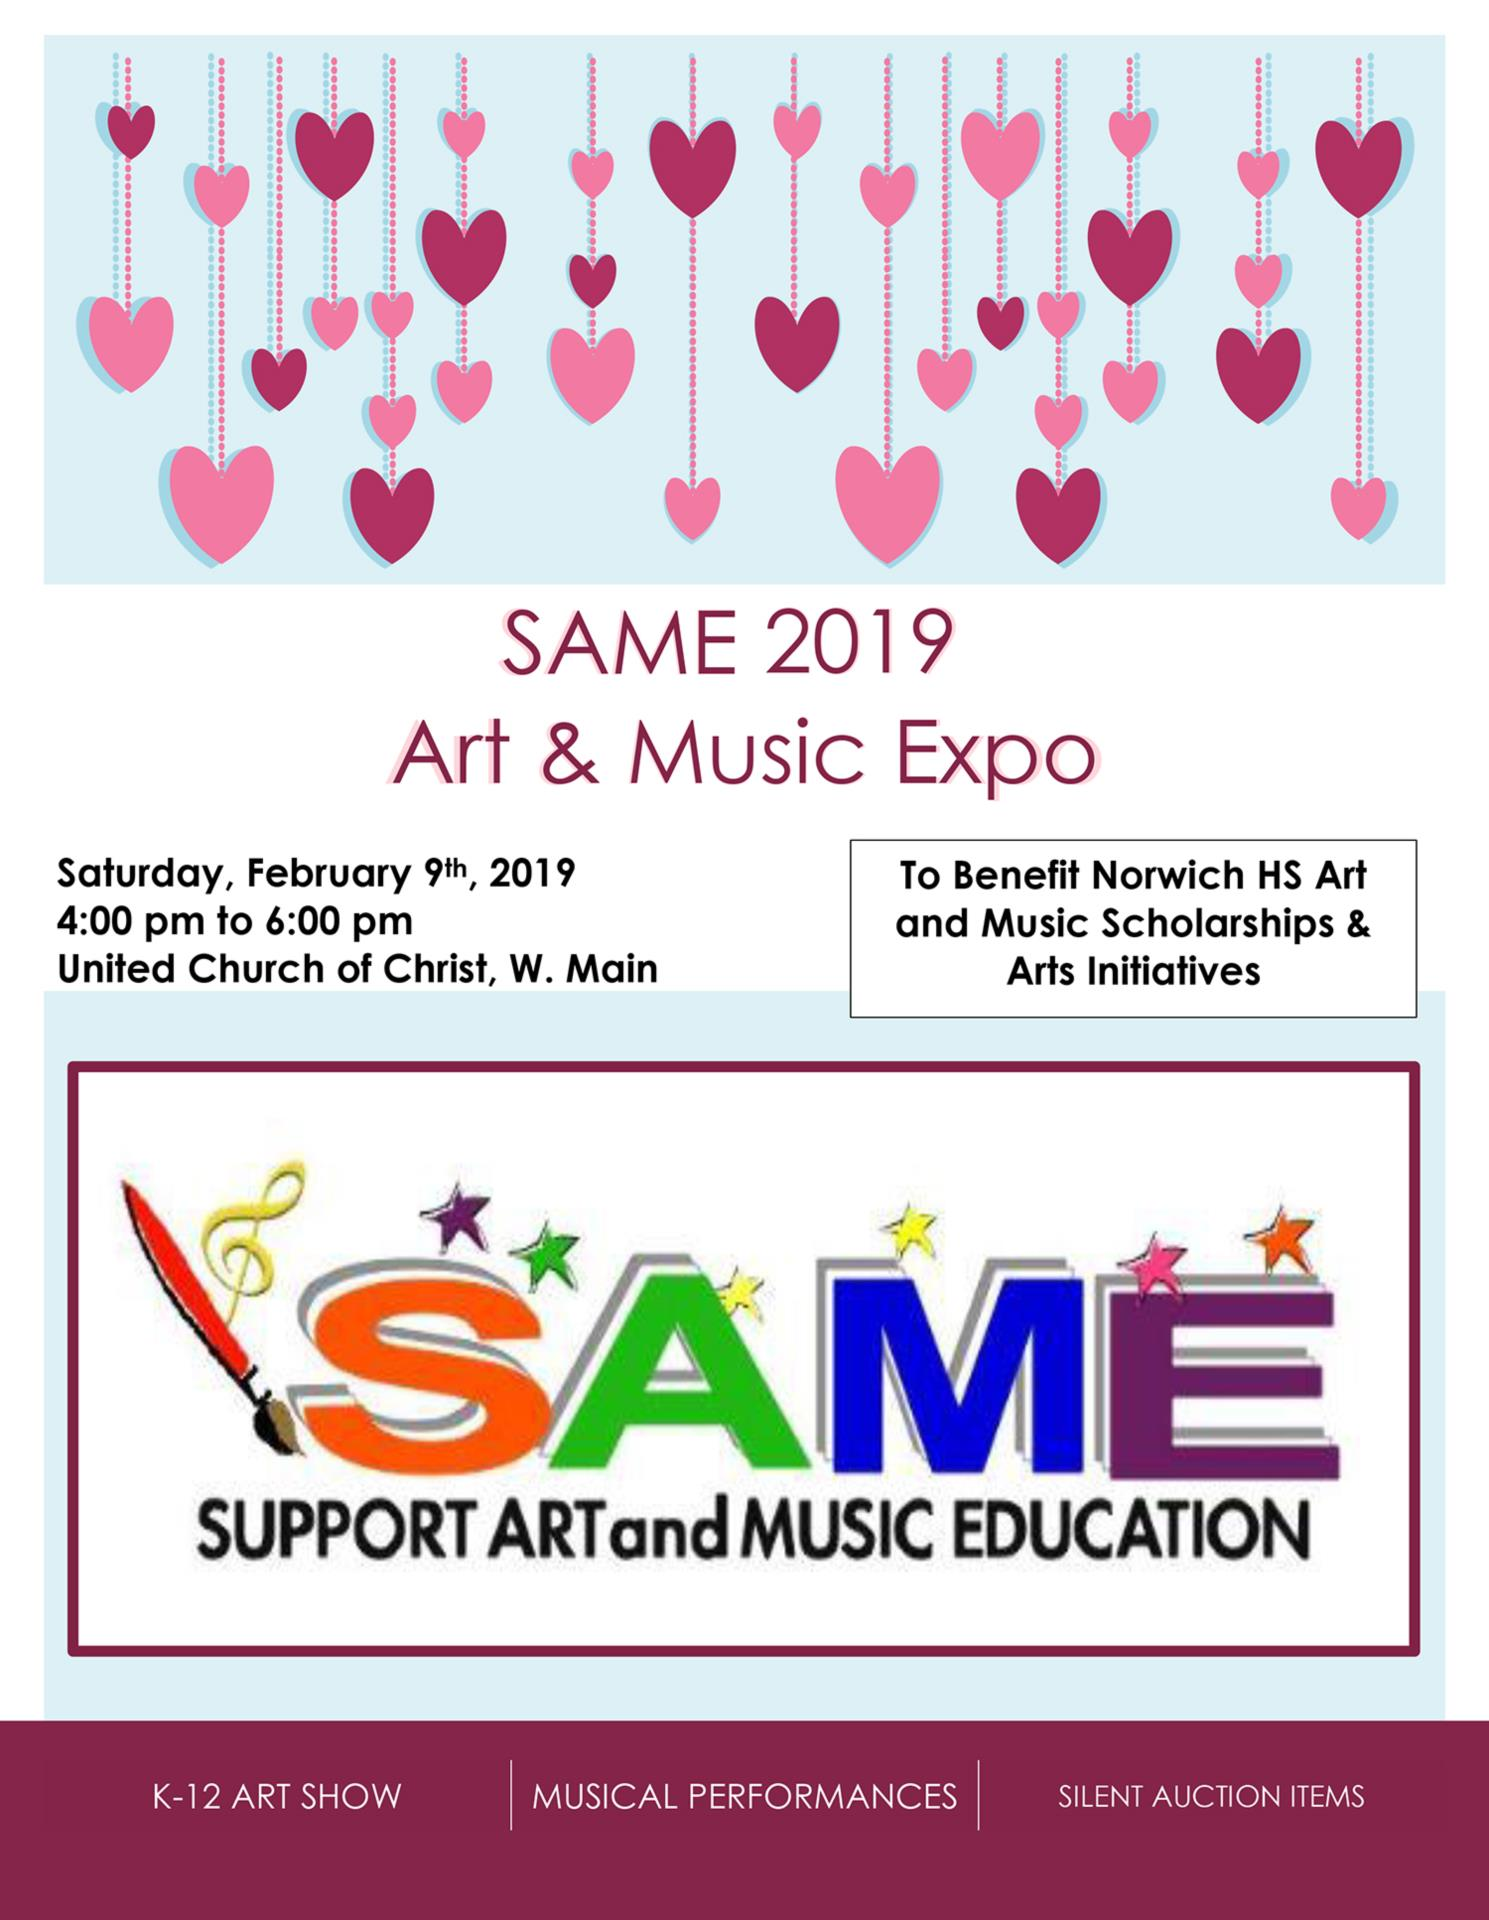 SAME Expo 2019 Flyer